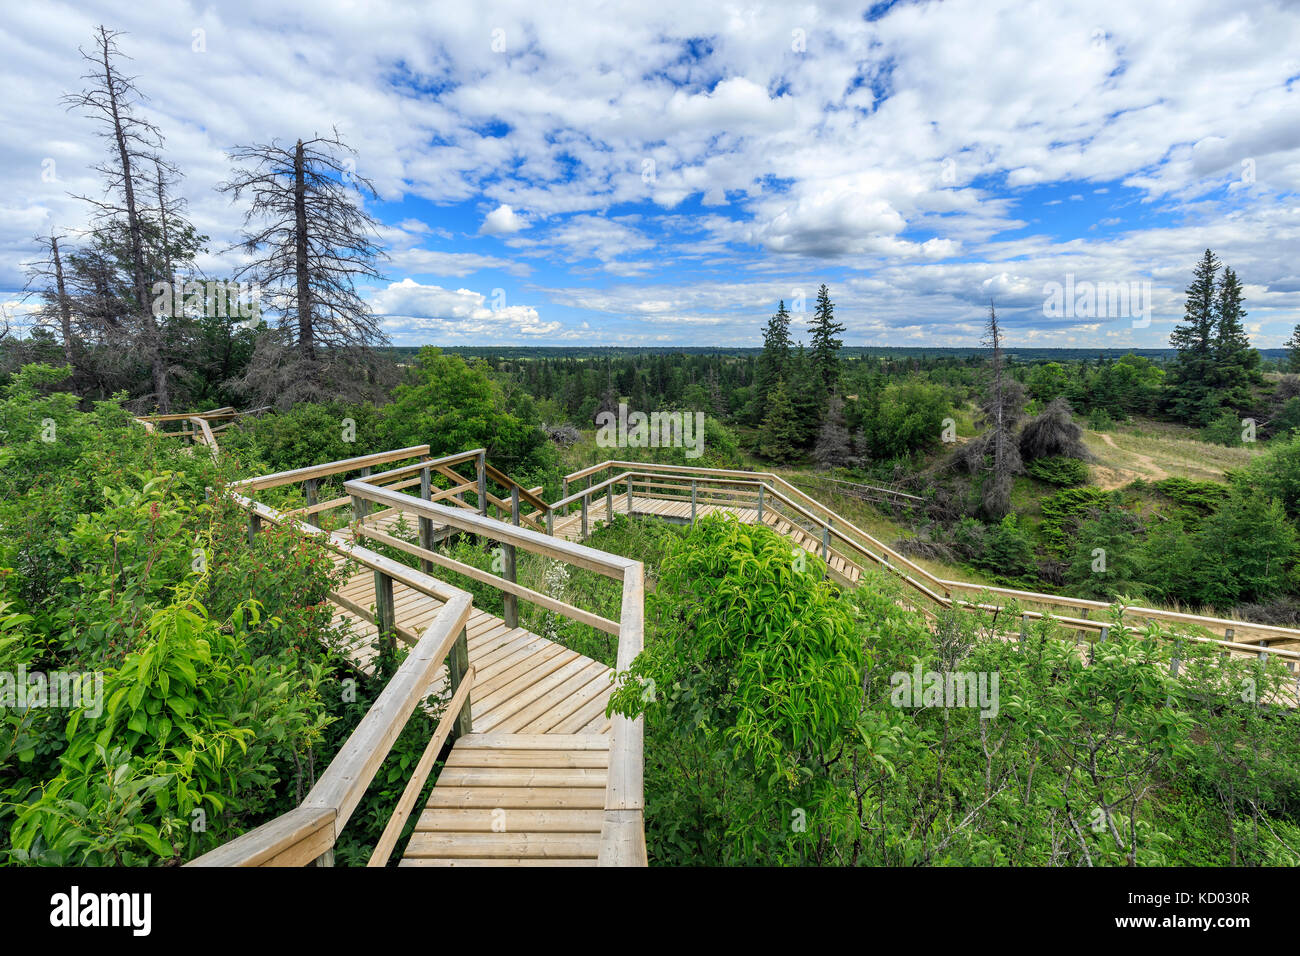 Wooden boardwalks leading to the Spirit Sands, Spruce Woods Provincial Park, Manitoba, Canada. - Stock Image